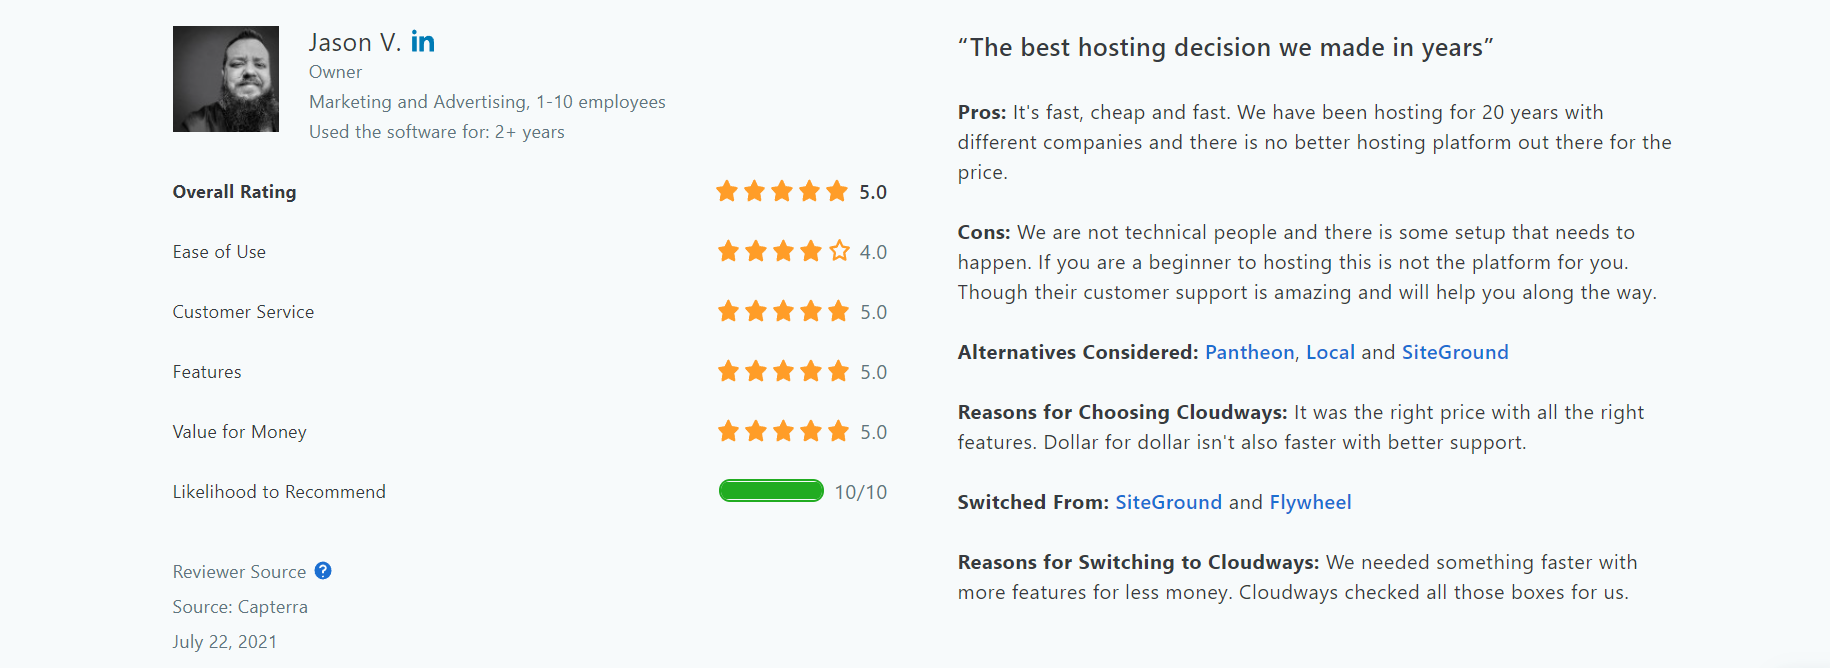 image 4 of Cloudway hosting site reviews